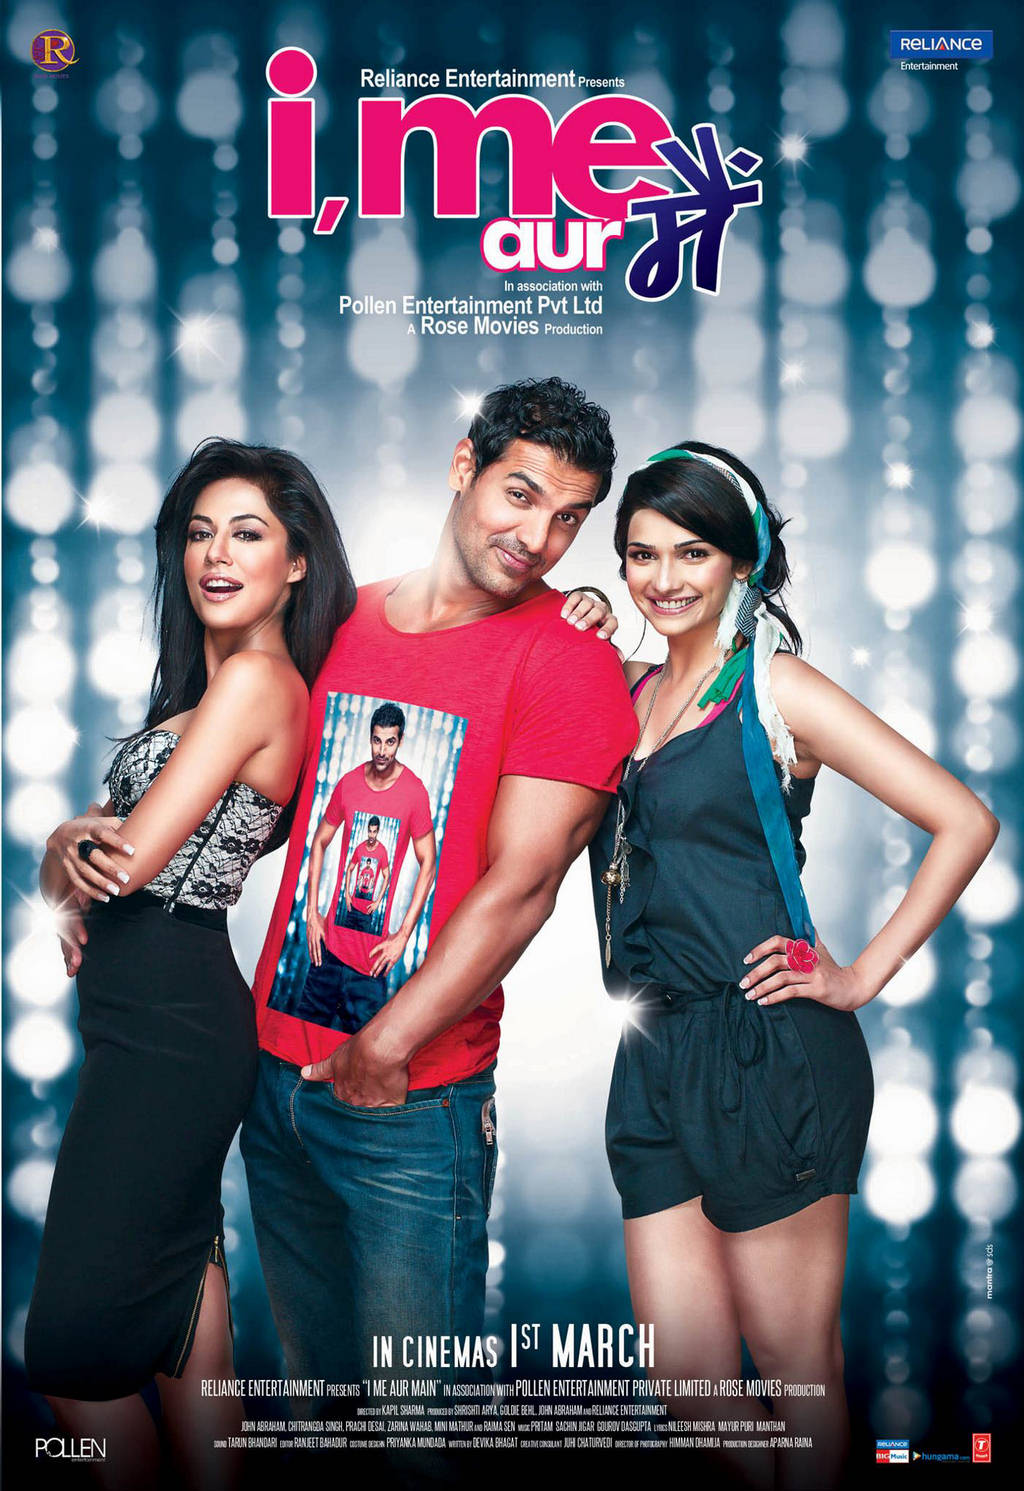 romance drama film directed by debutant Kapil Sharma. The film